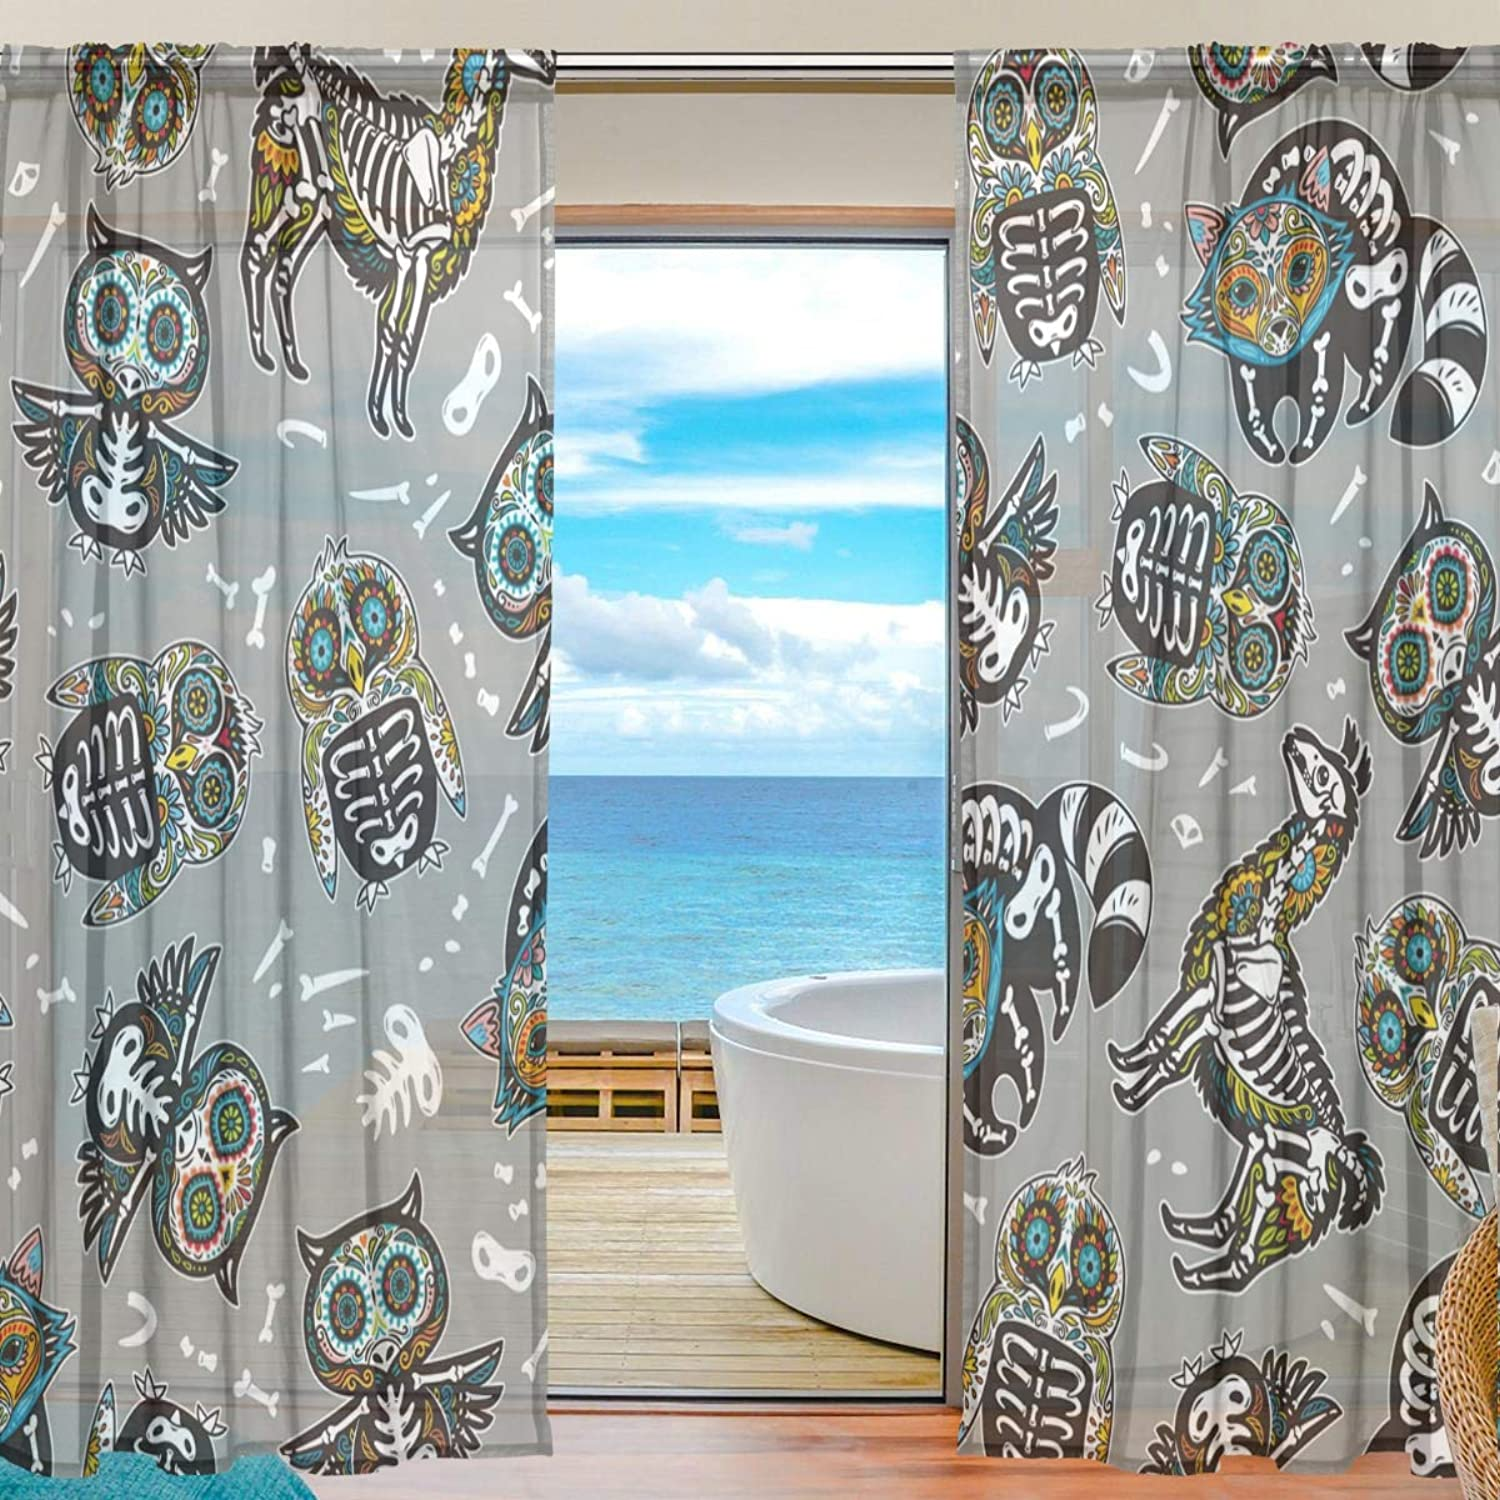 Death Animal 2 Pieces Curtain Panel 55 x 78 inches for Bedroom Living Room